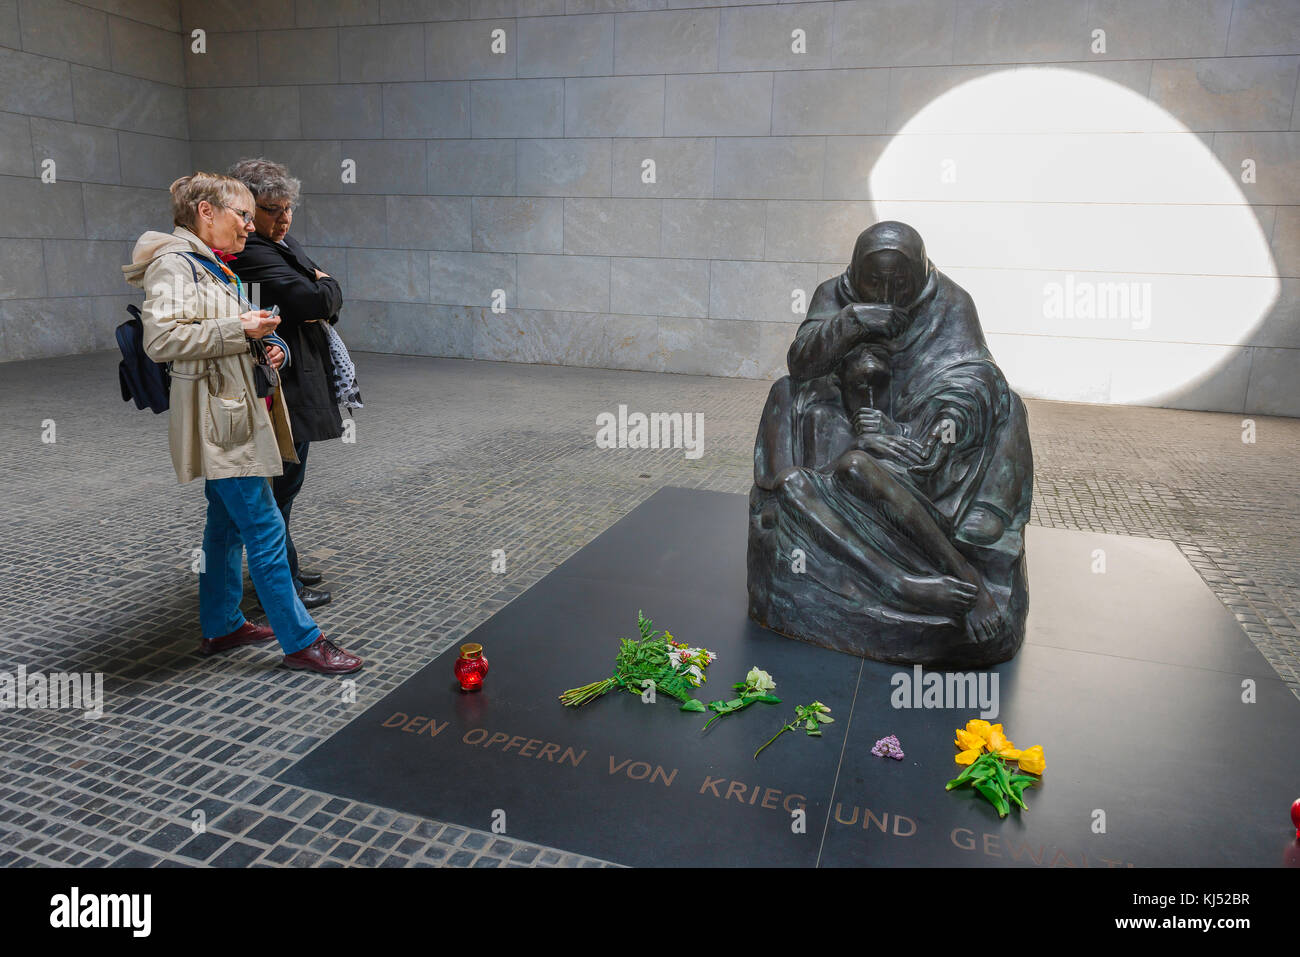 Two women visiting the National Memorial To The Victims Of War And Tyranny in the Neue Wache, Berlin, view a statue - Stock Image